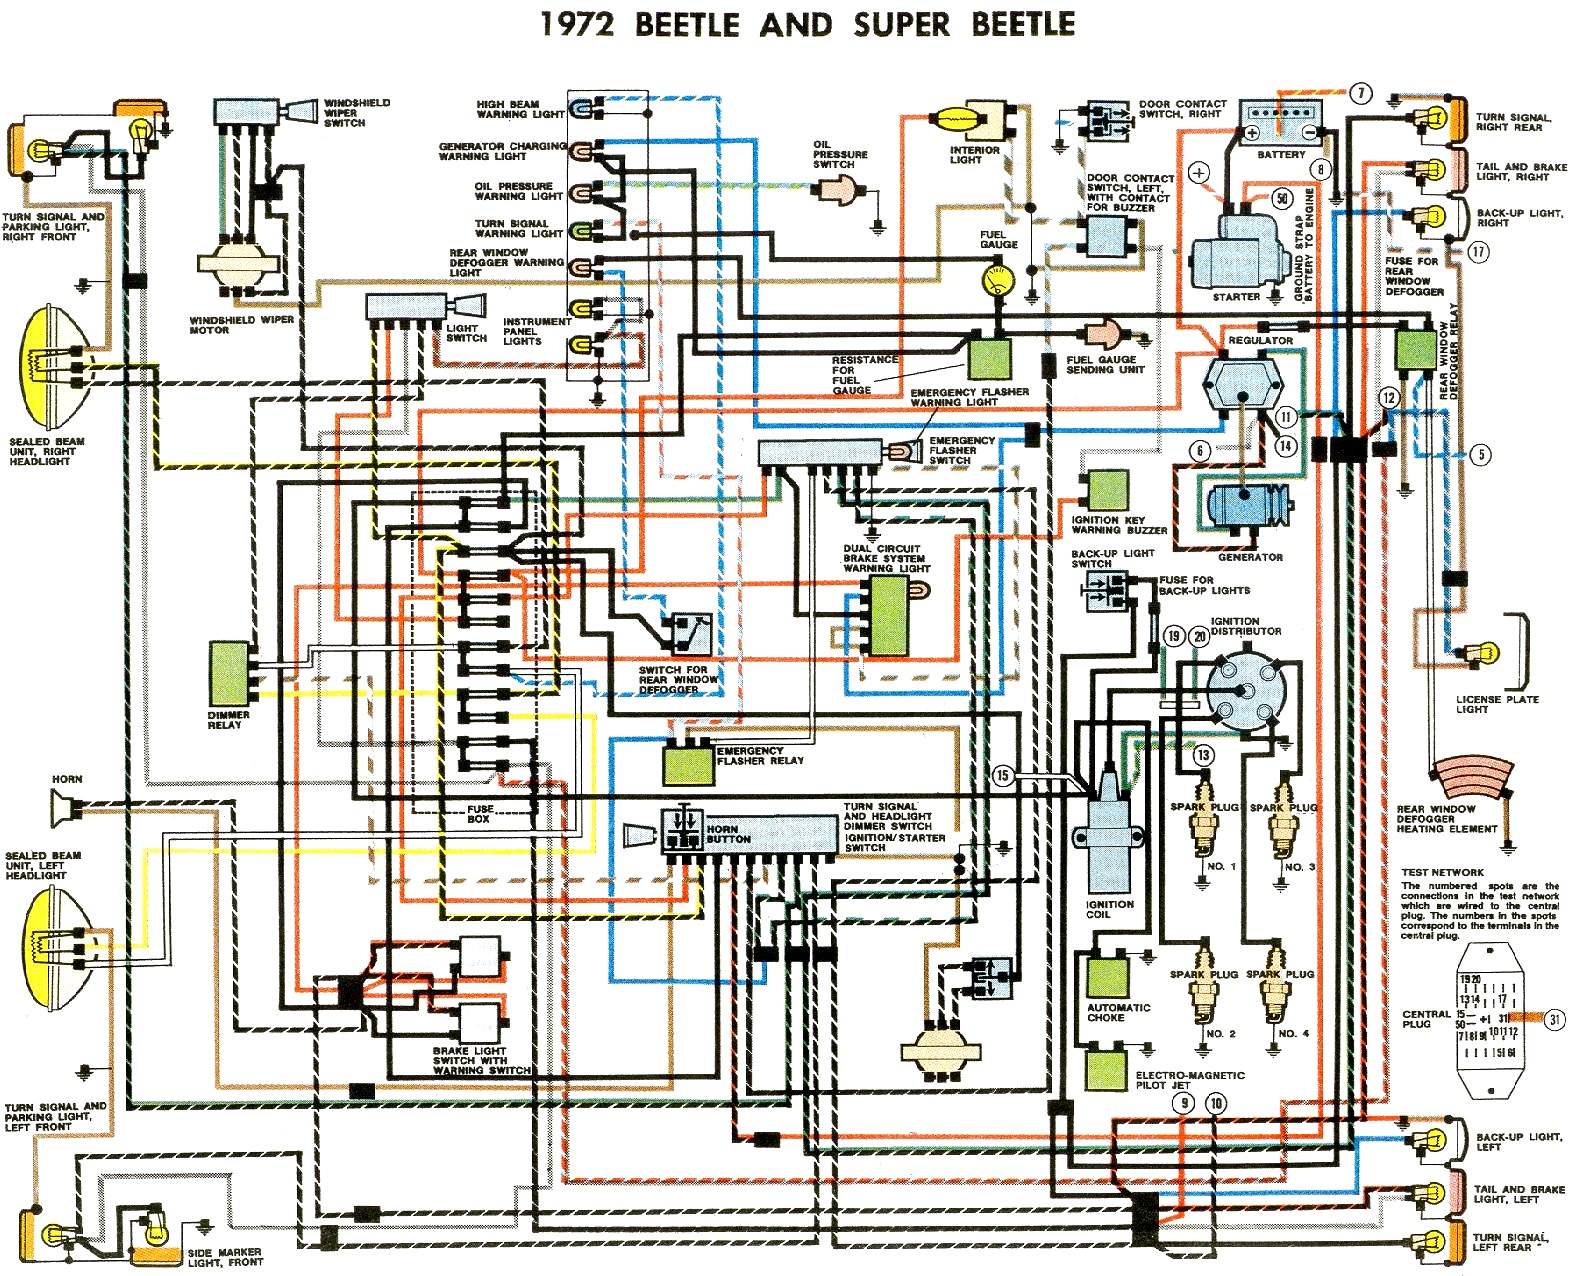 vw beetle wiring diagram wiring diagrams online 1972 beetle wiring diagram thegoldenbug com